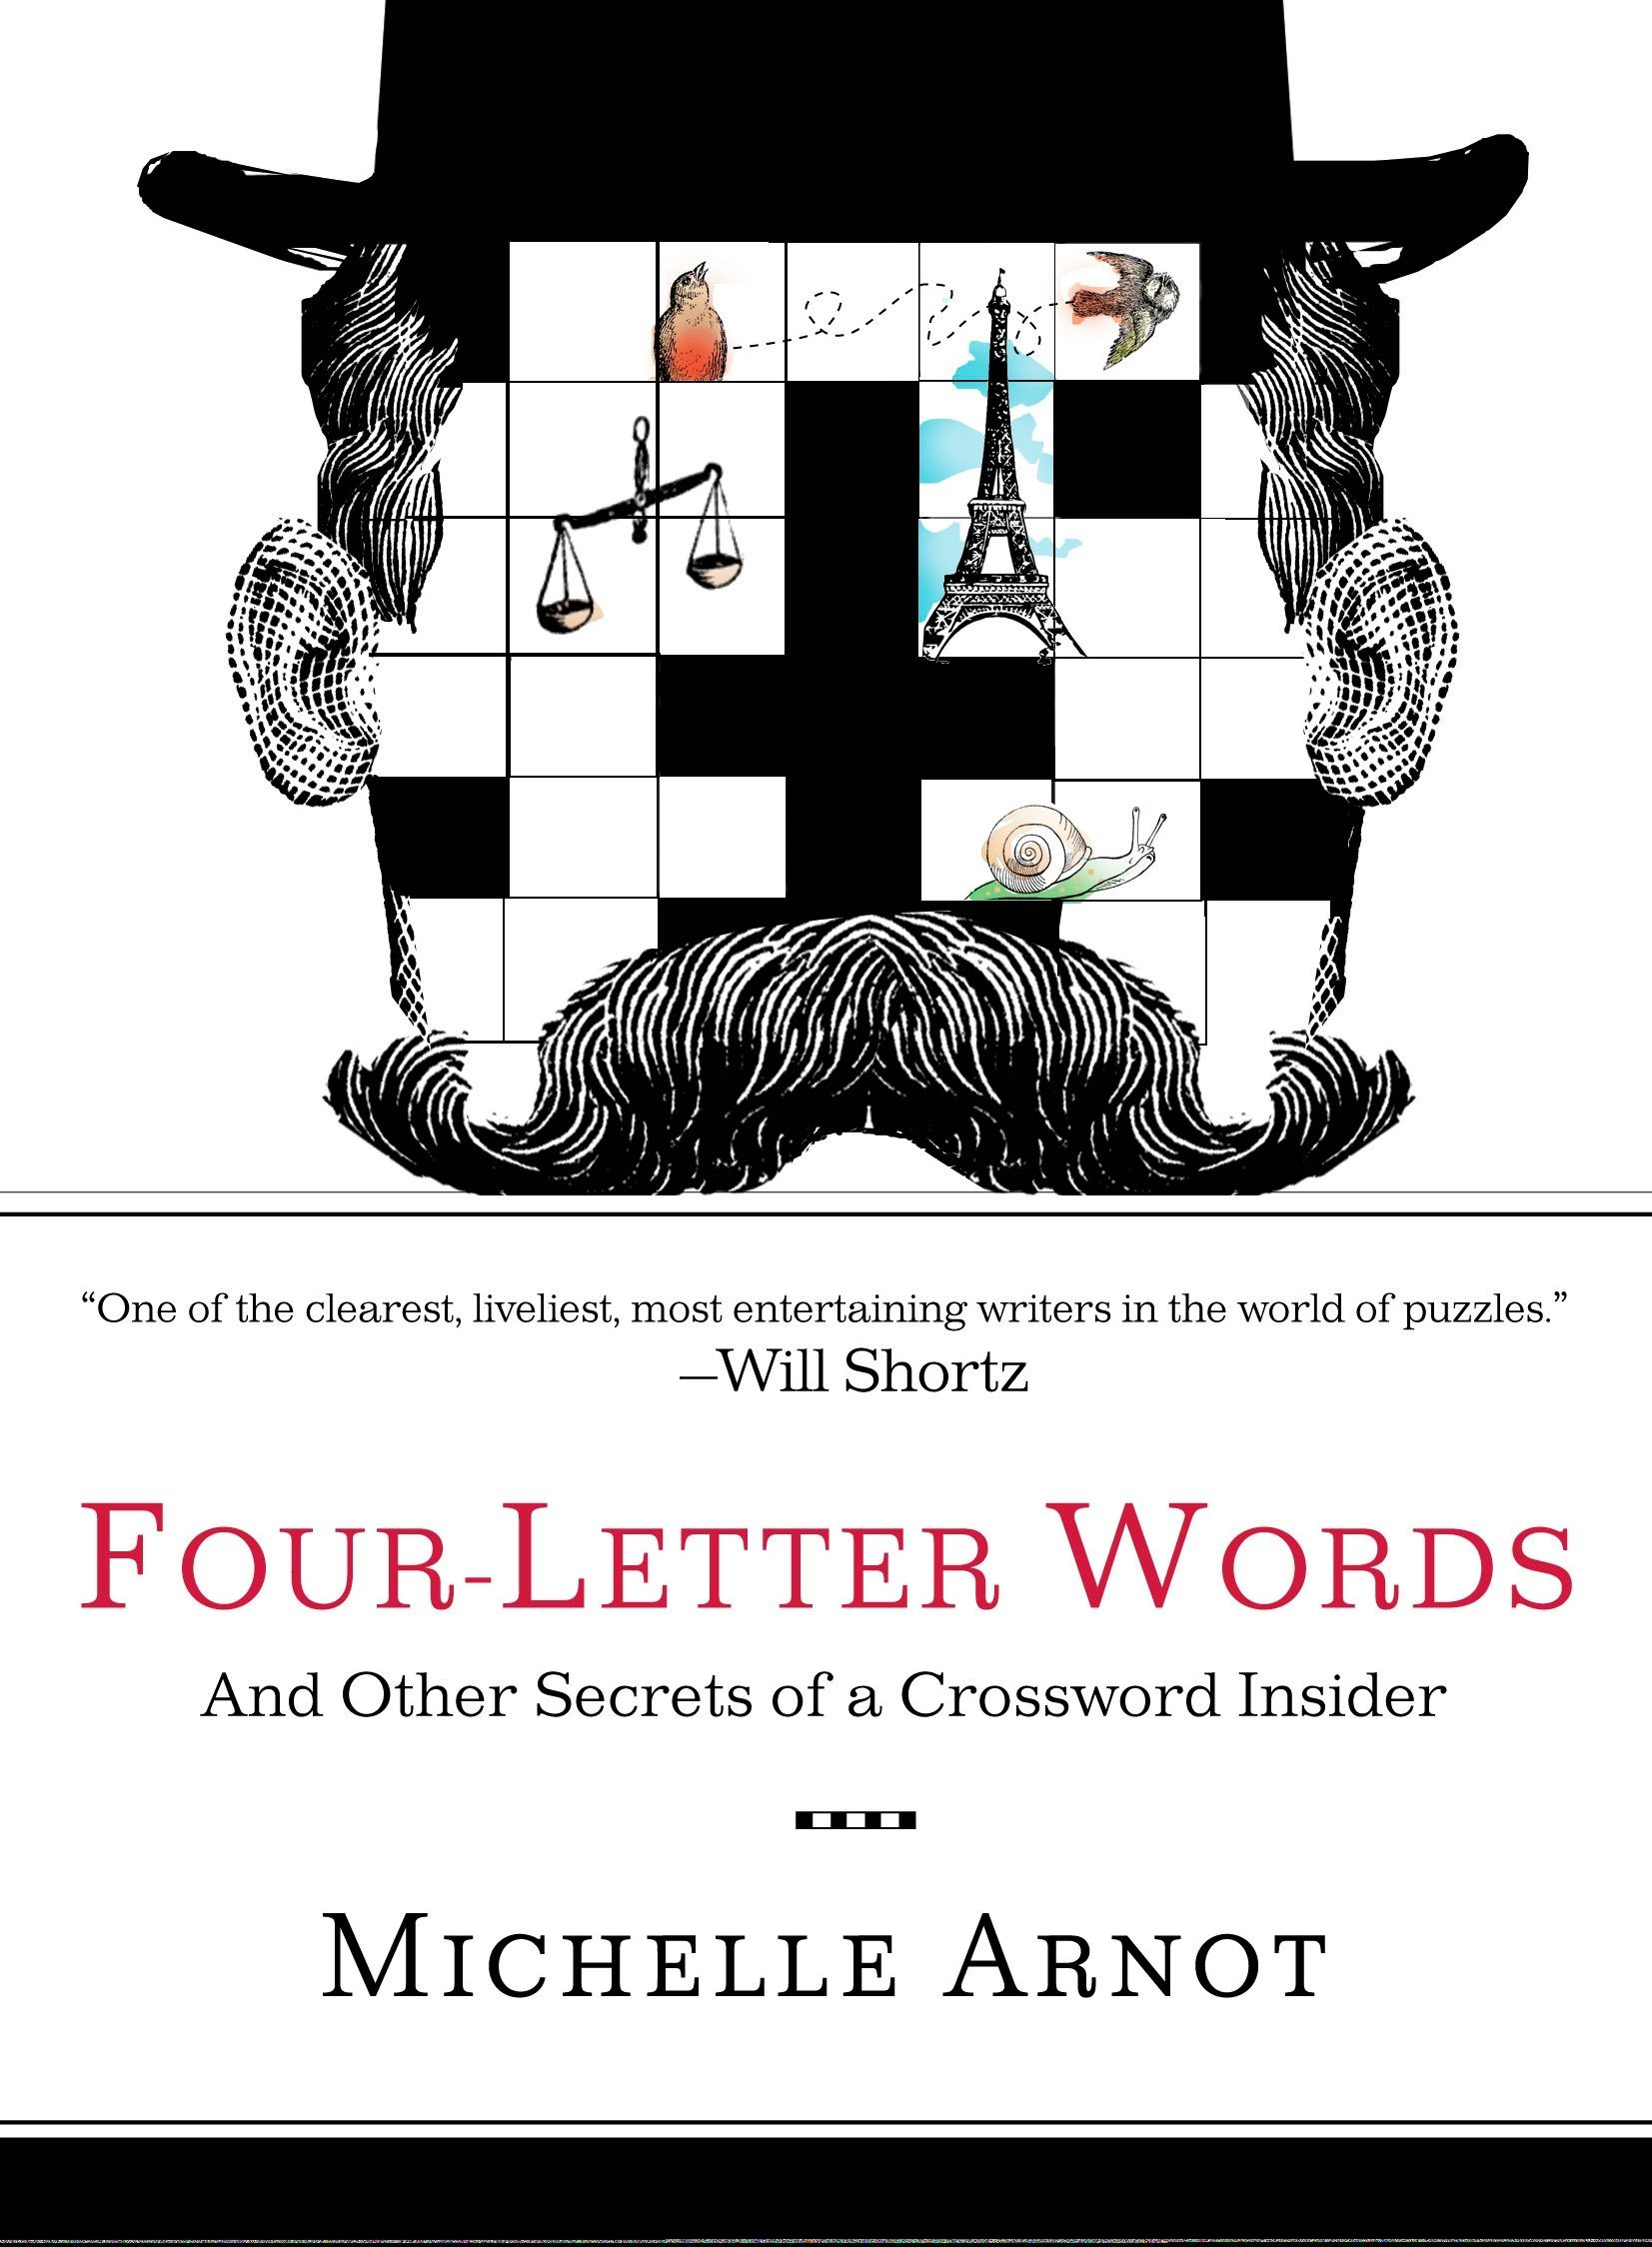 Four Letter Words And Other Secrets Of A Crossword Insider